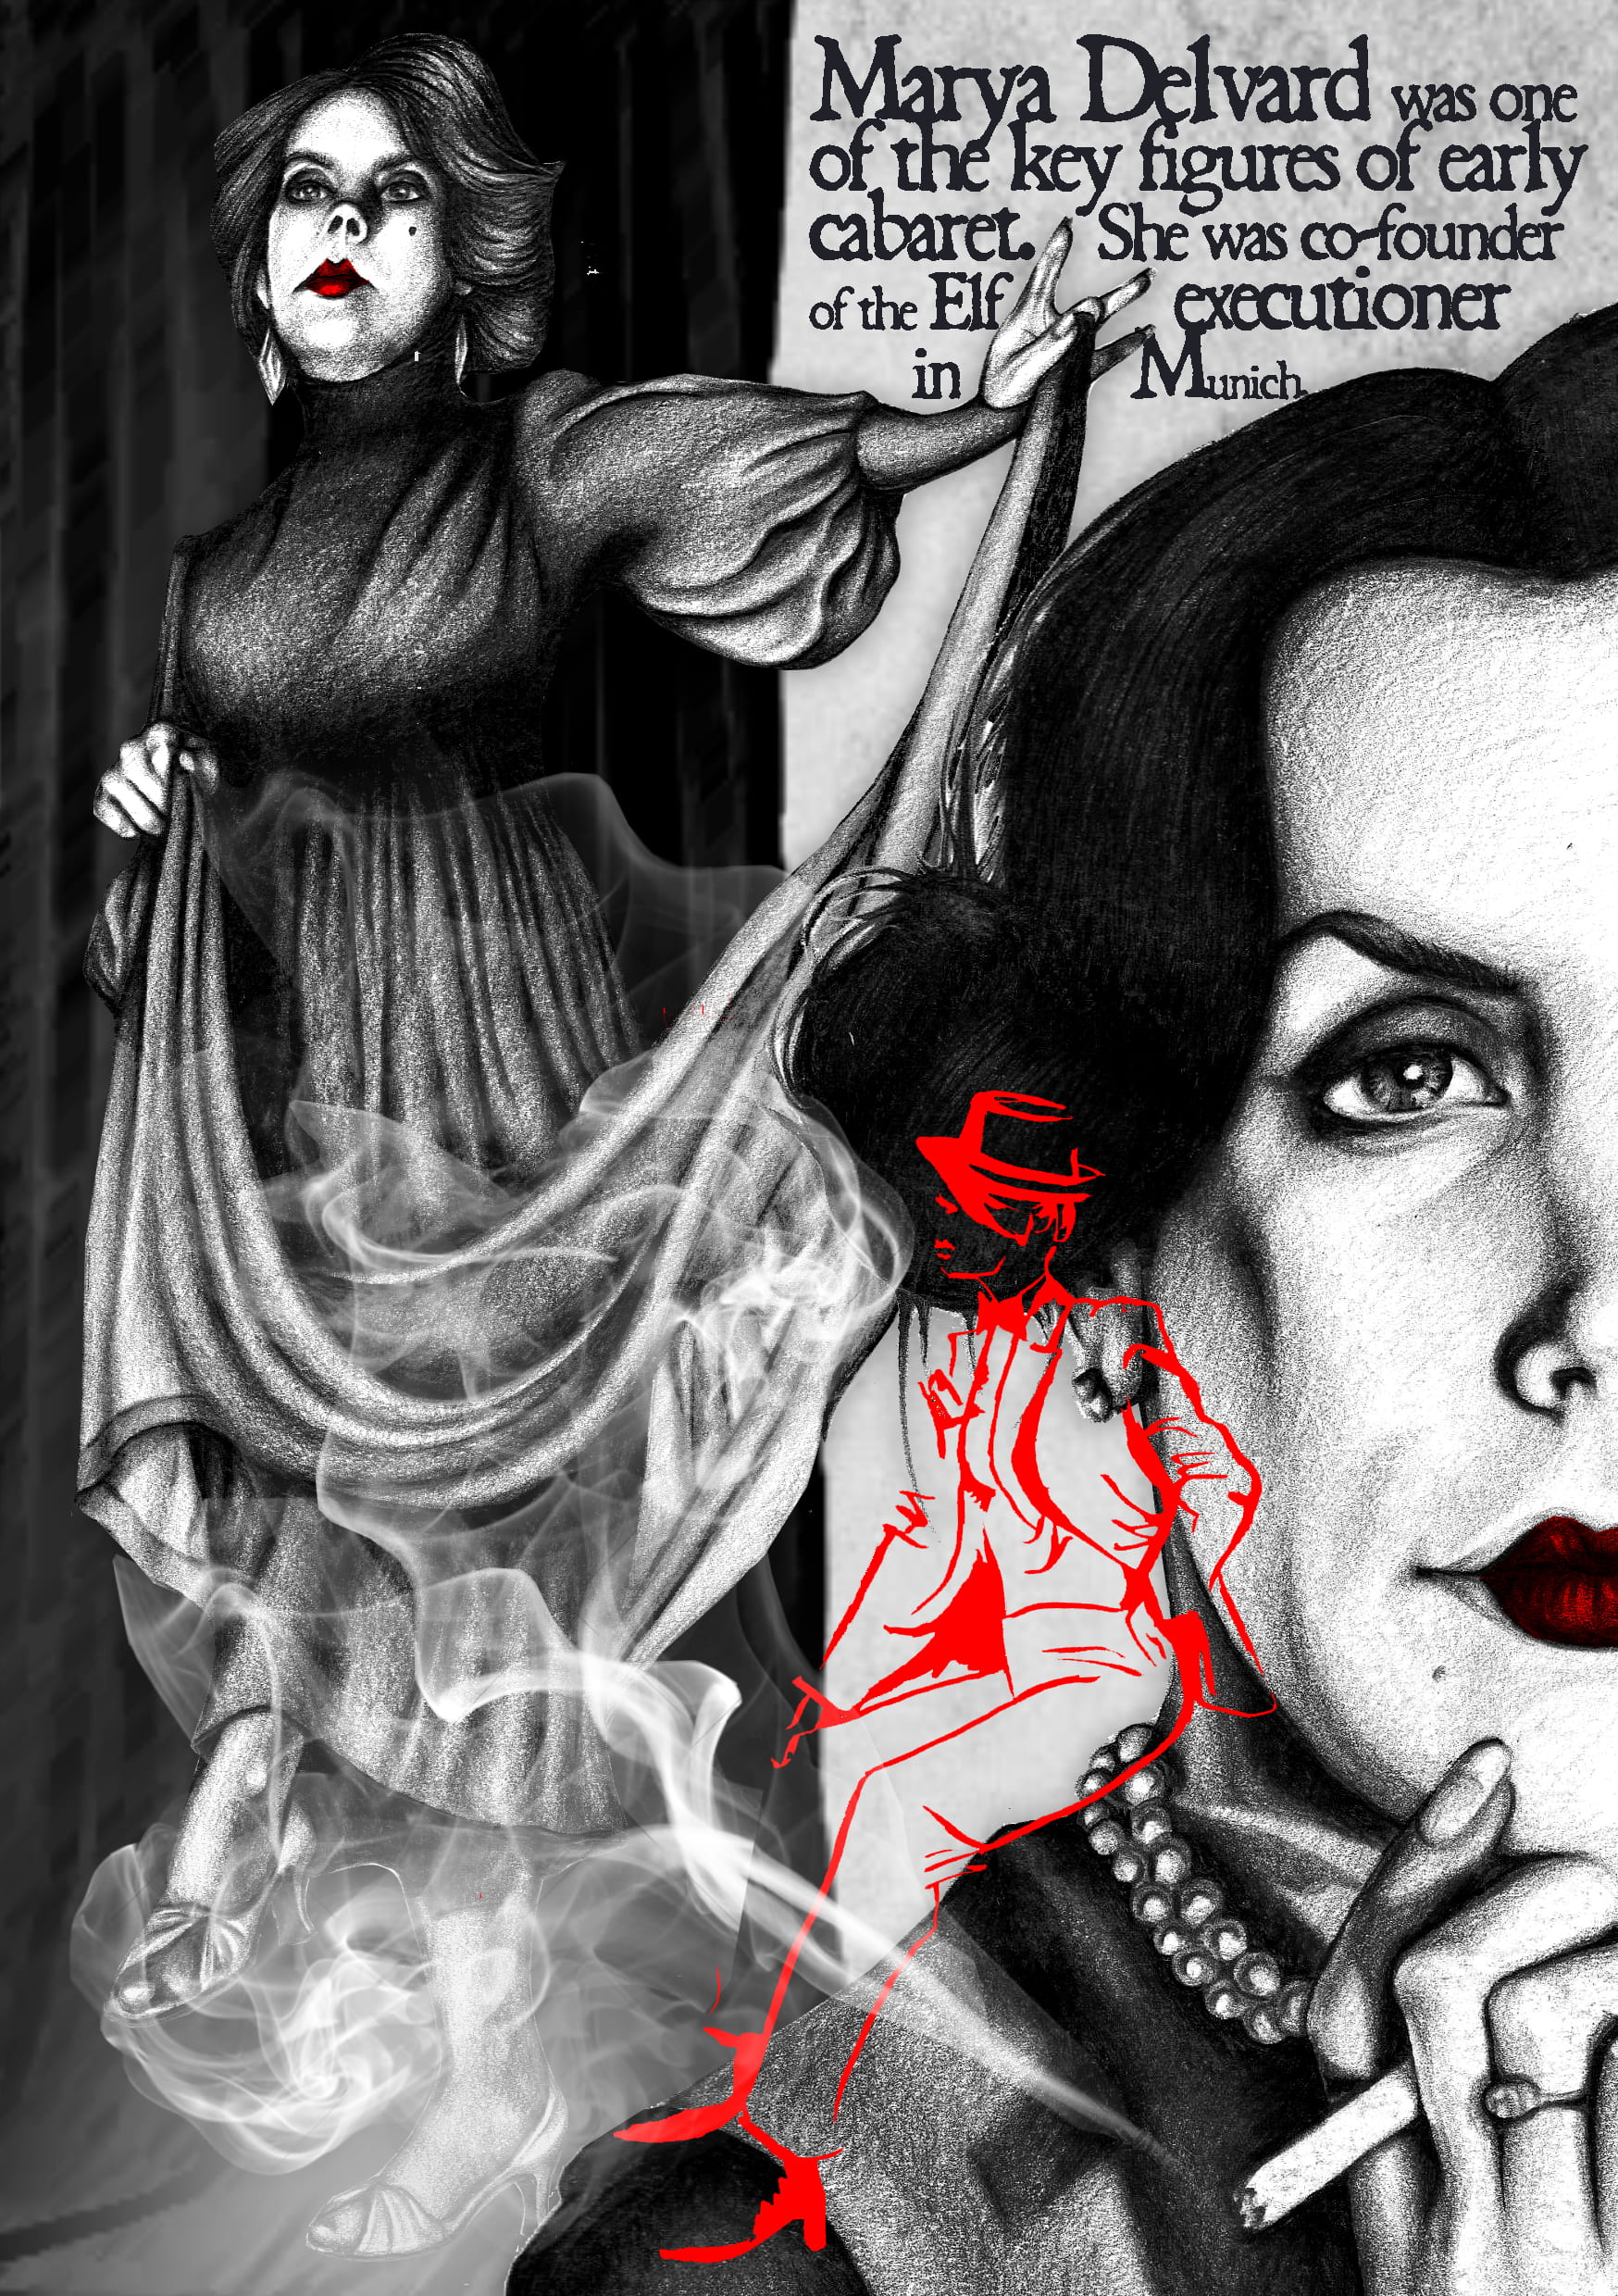 An illustration depicting cabaret star 'Marya Delvard', a close up of half of her face in the foreground, with a full body illustration by the side of it.